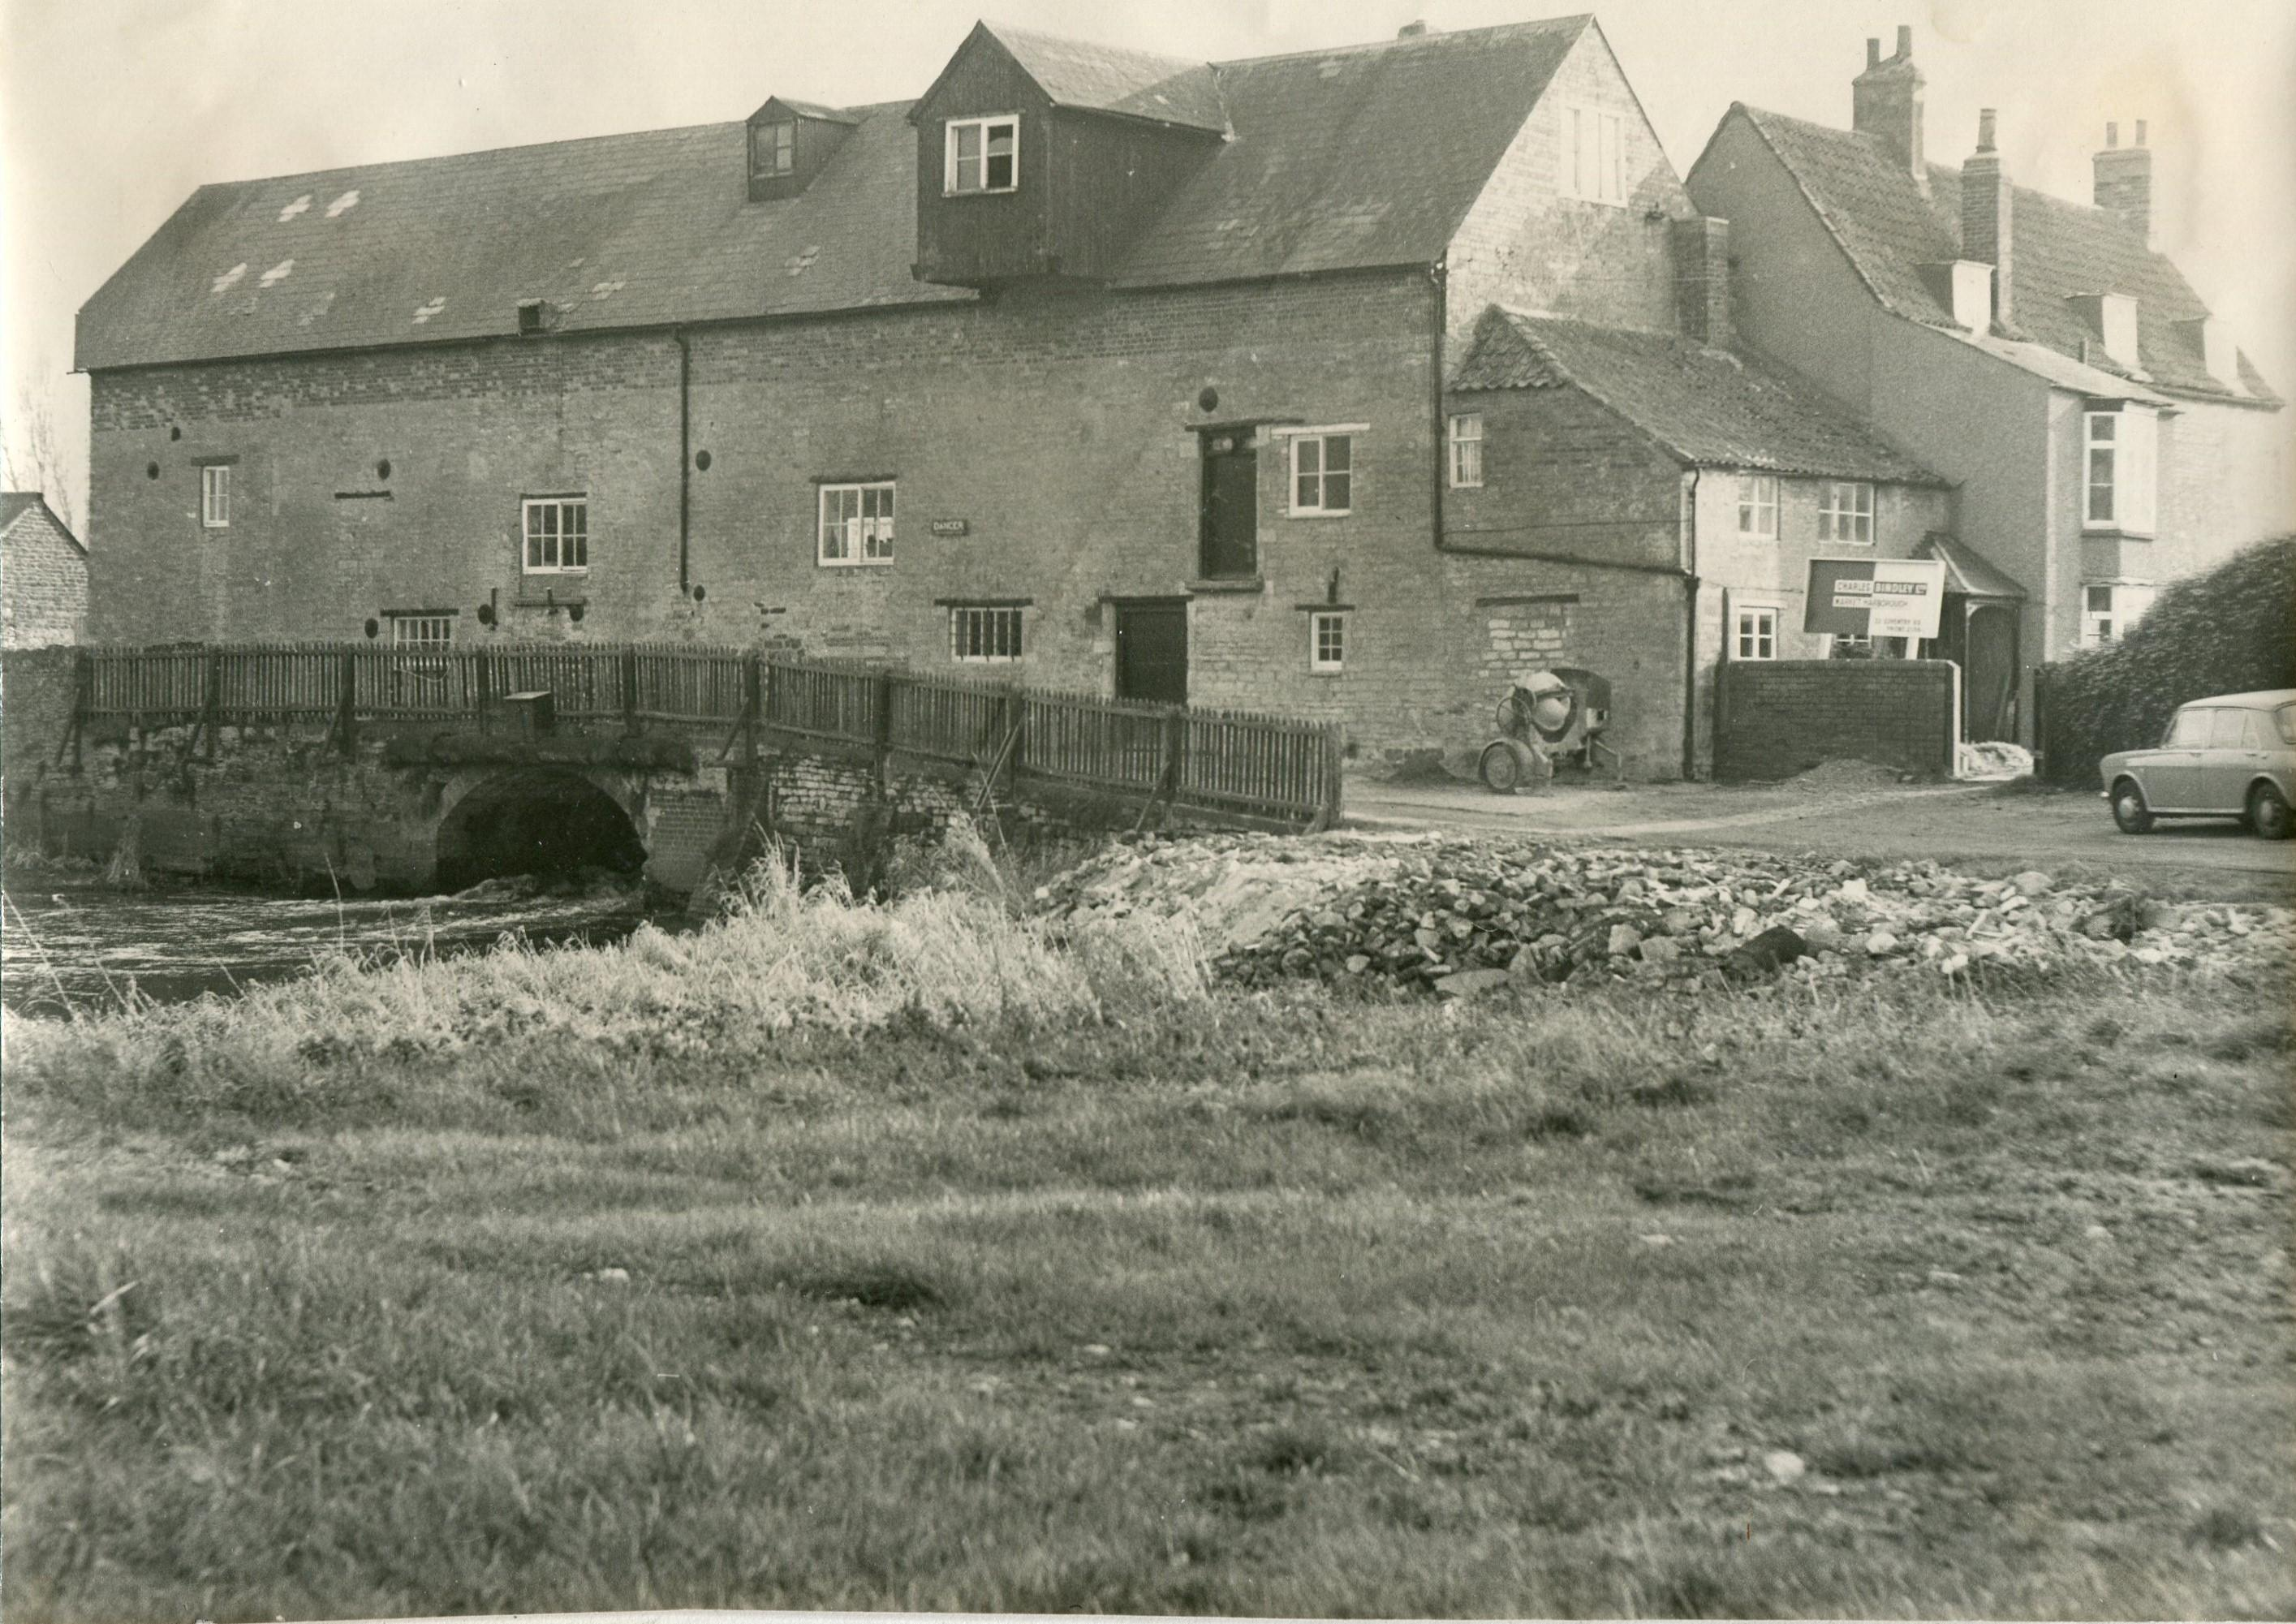 Islip Mill 1973 (During Restoration)